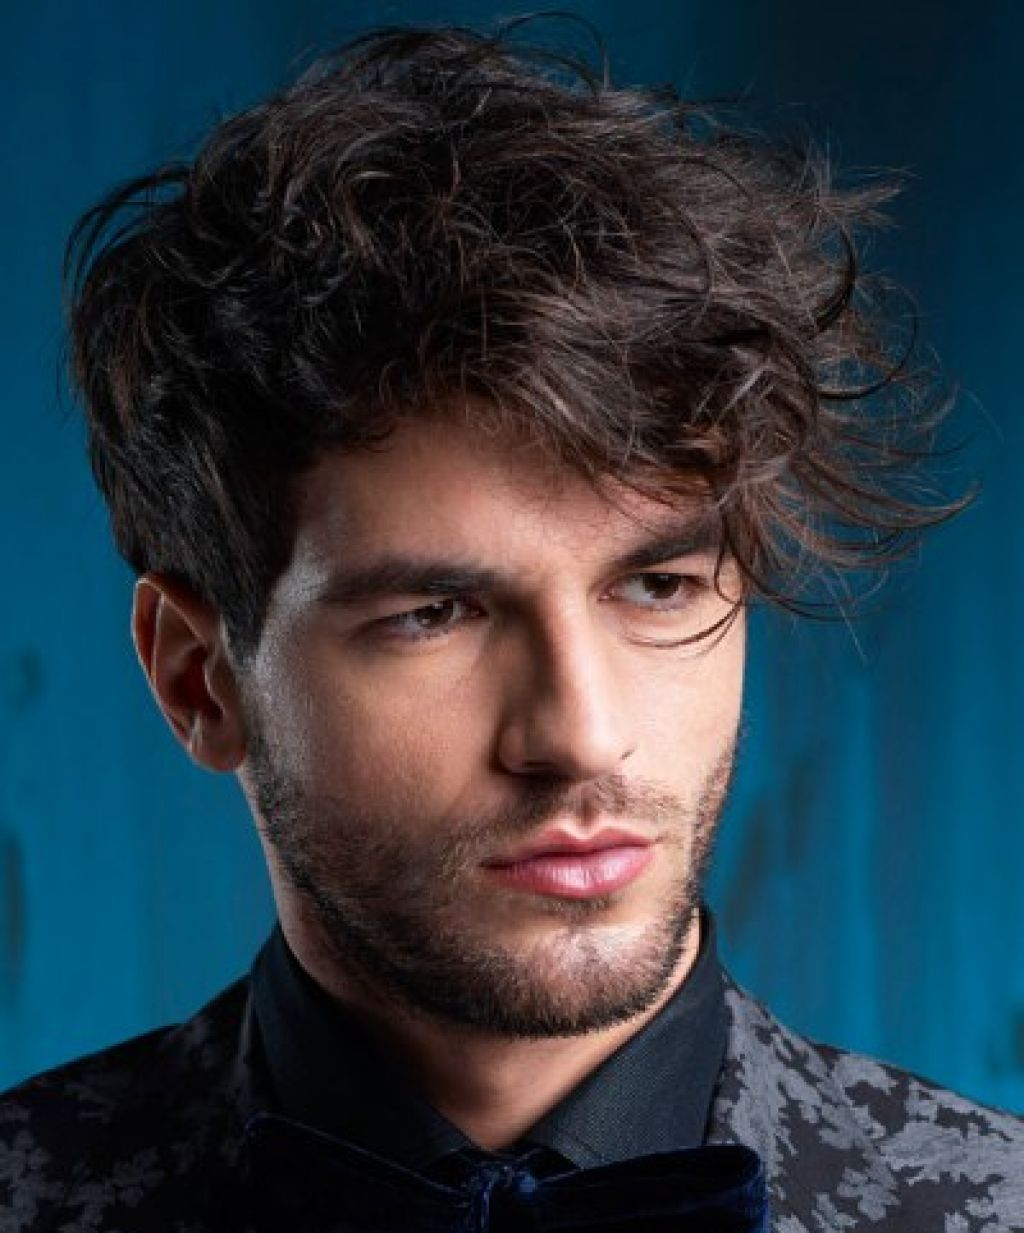 hairstyles for men with curly hair wallpaper | sexiest curly